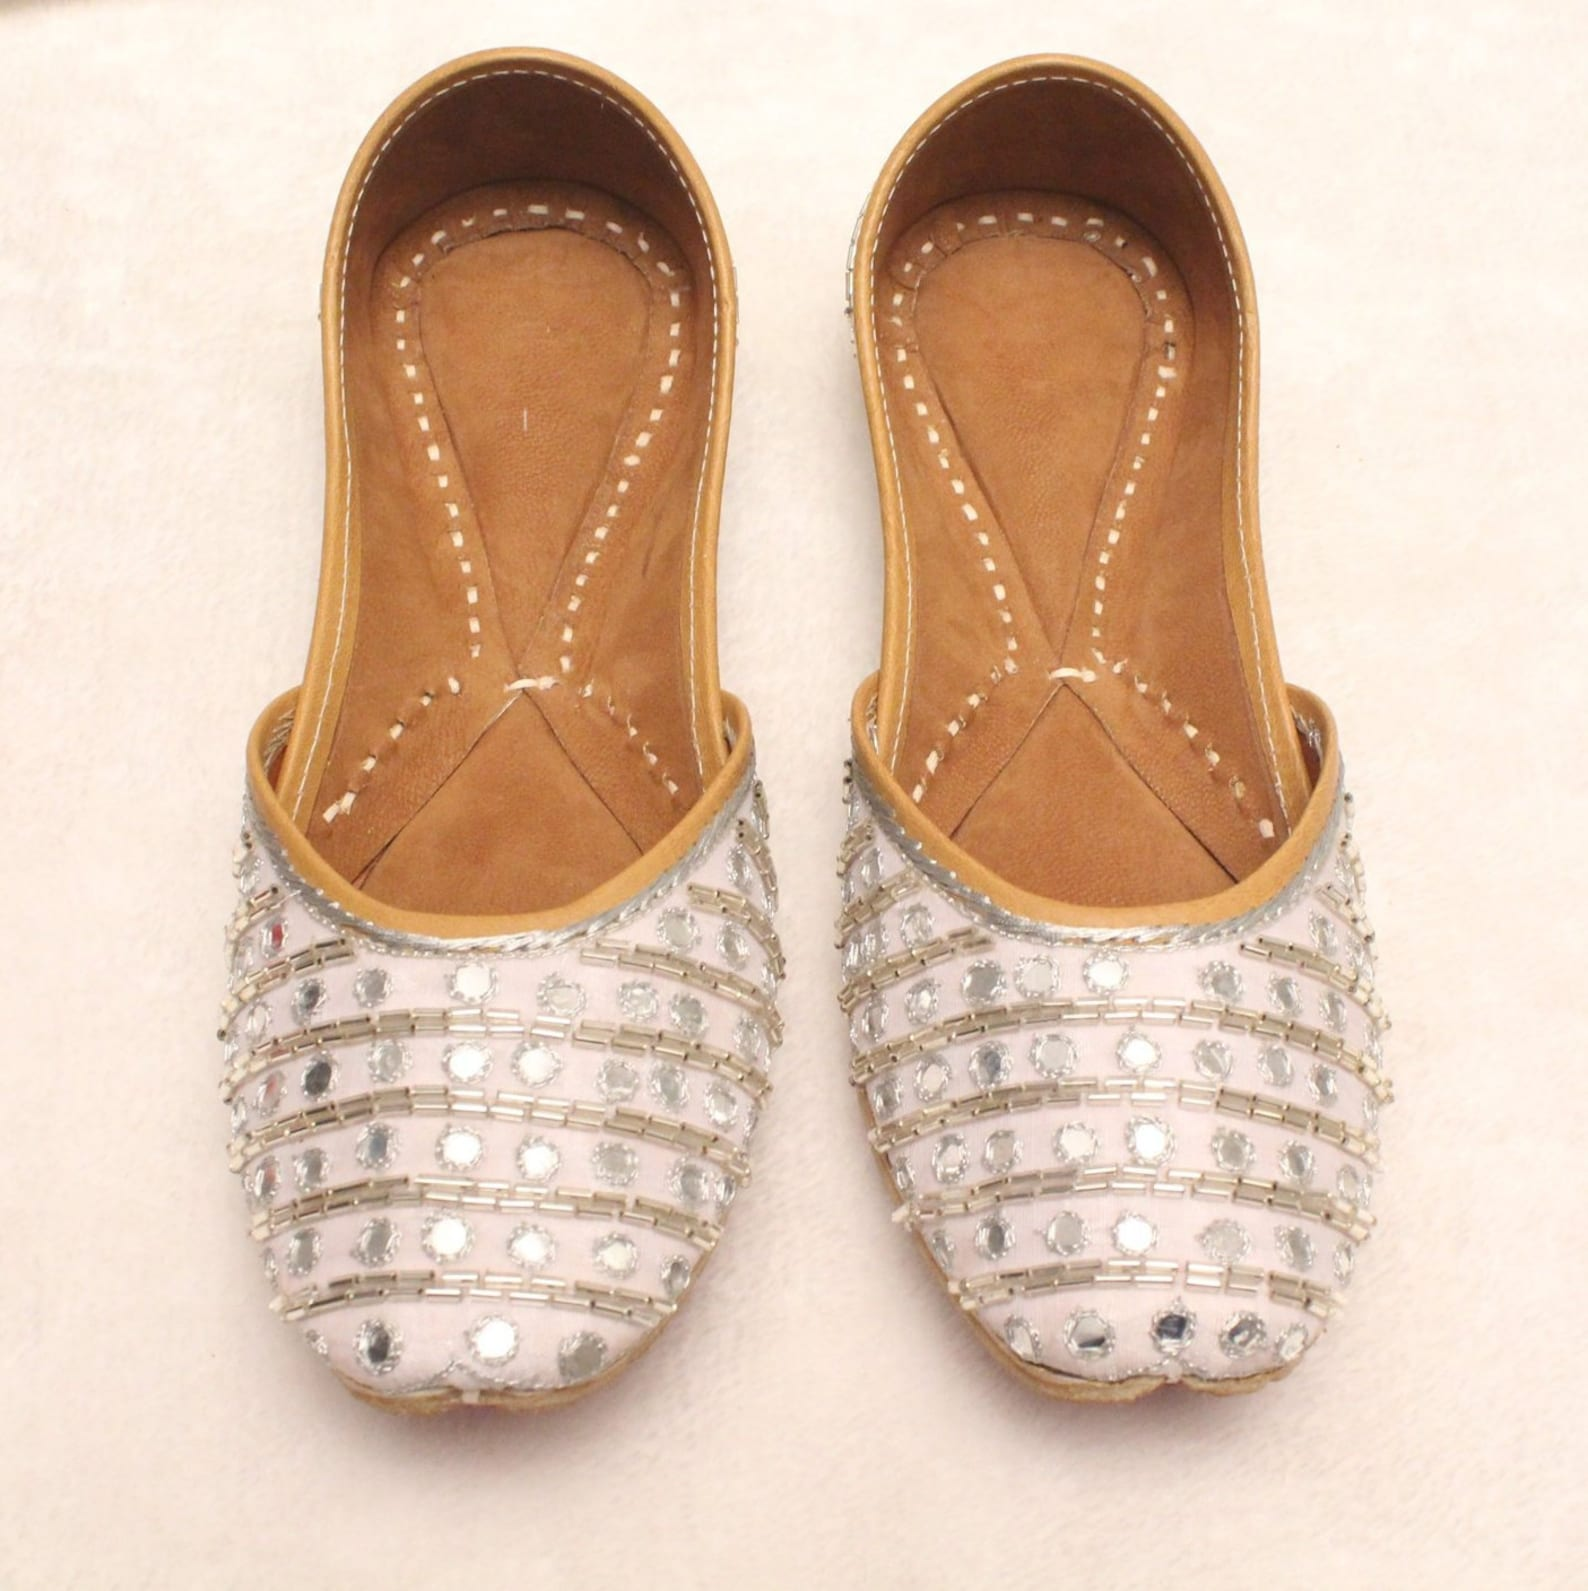 women shoes/punjabi jutti/silver indian shoes/indian leather shoes/ballet flats/silver sequence shoes/handmade bridal khussa wom